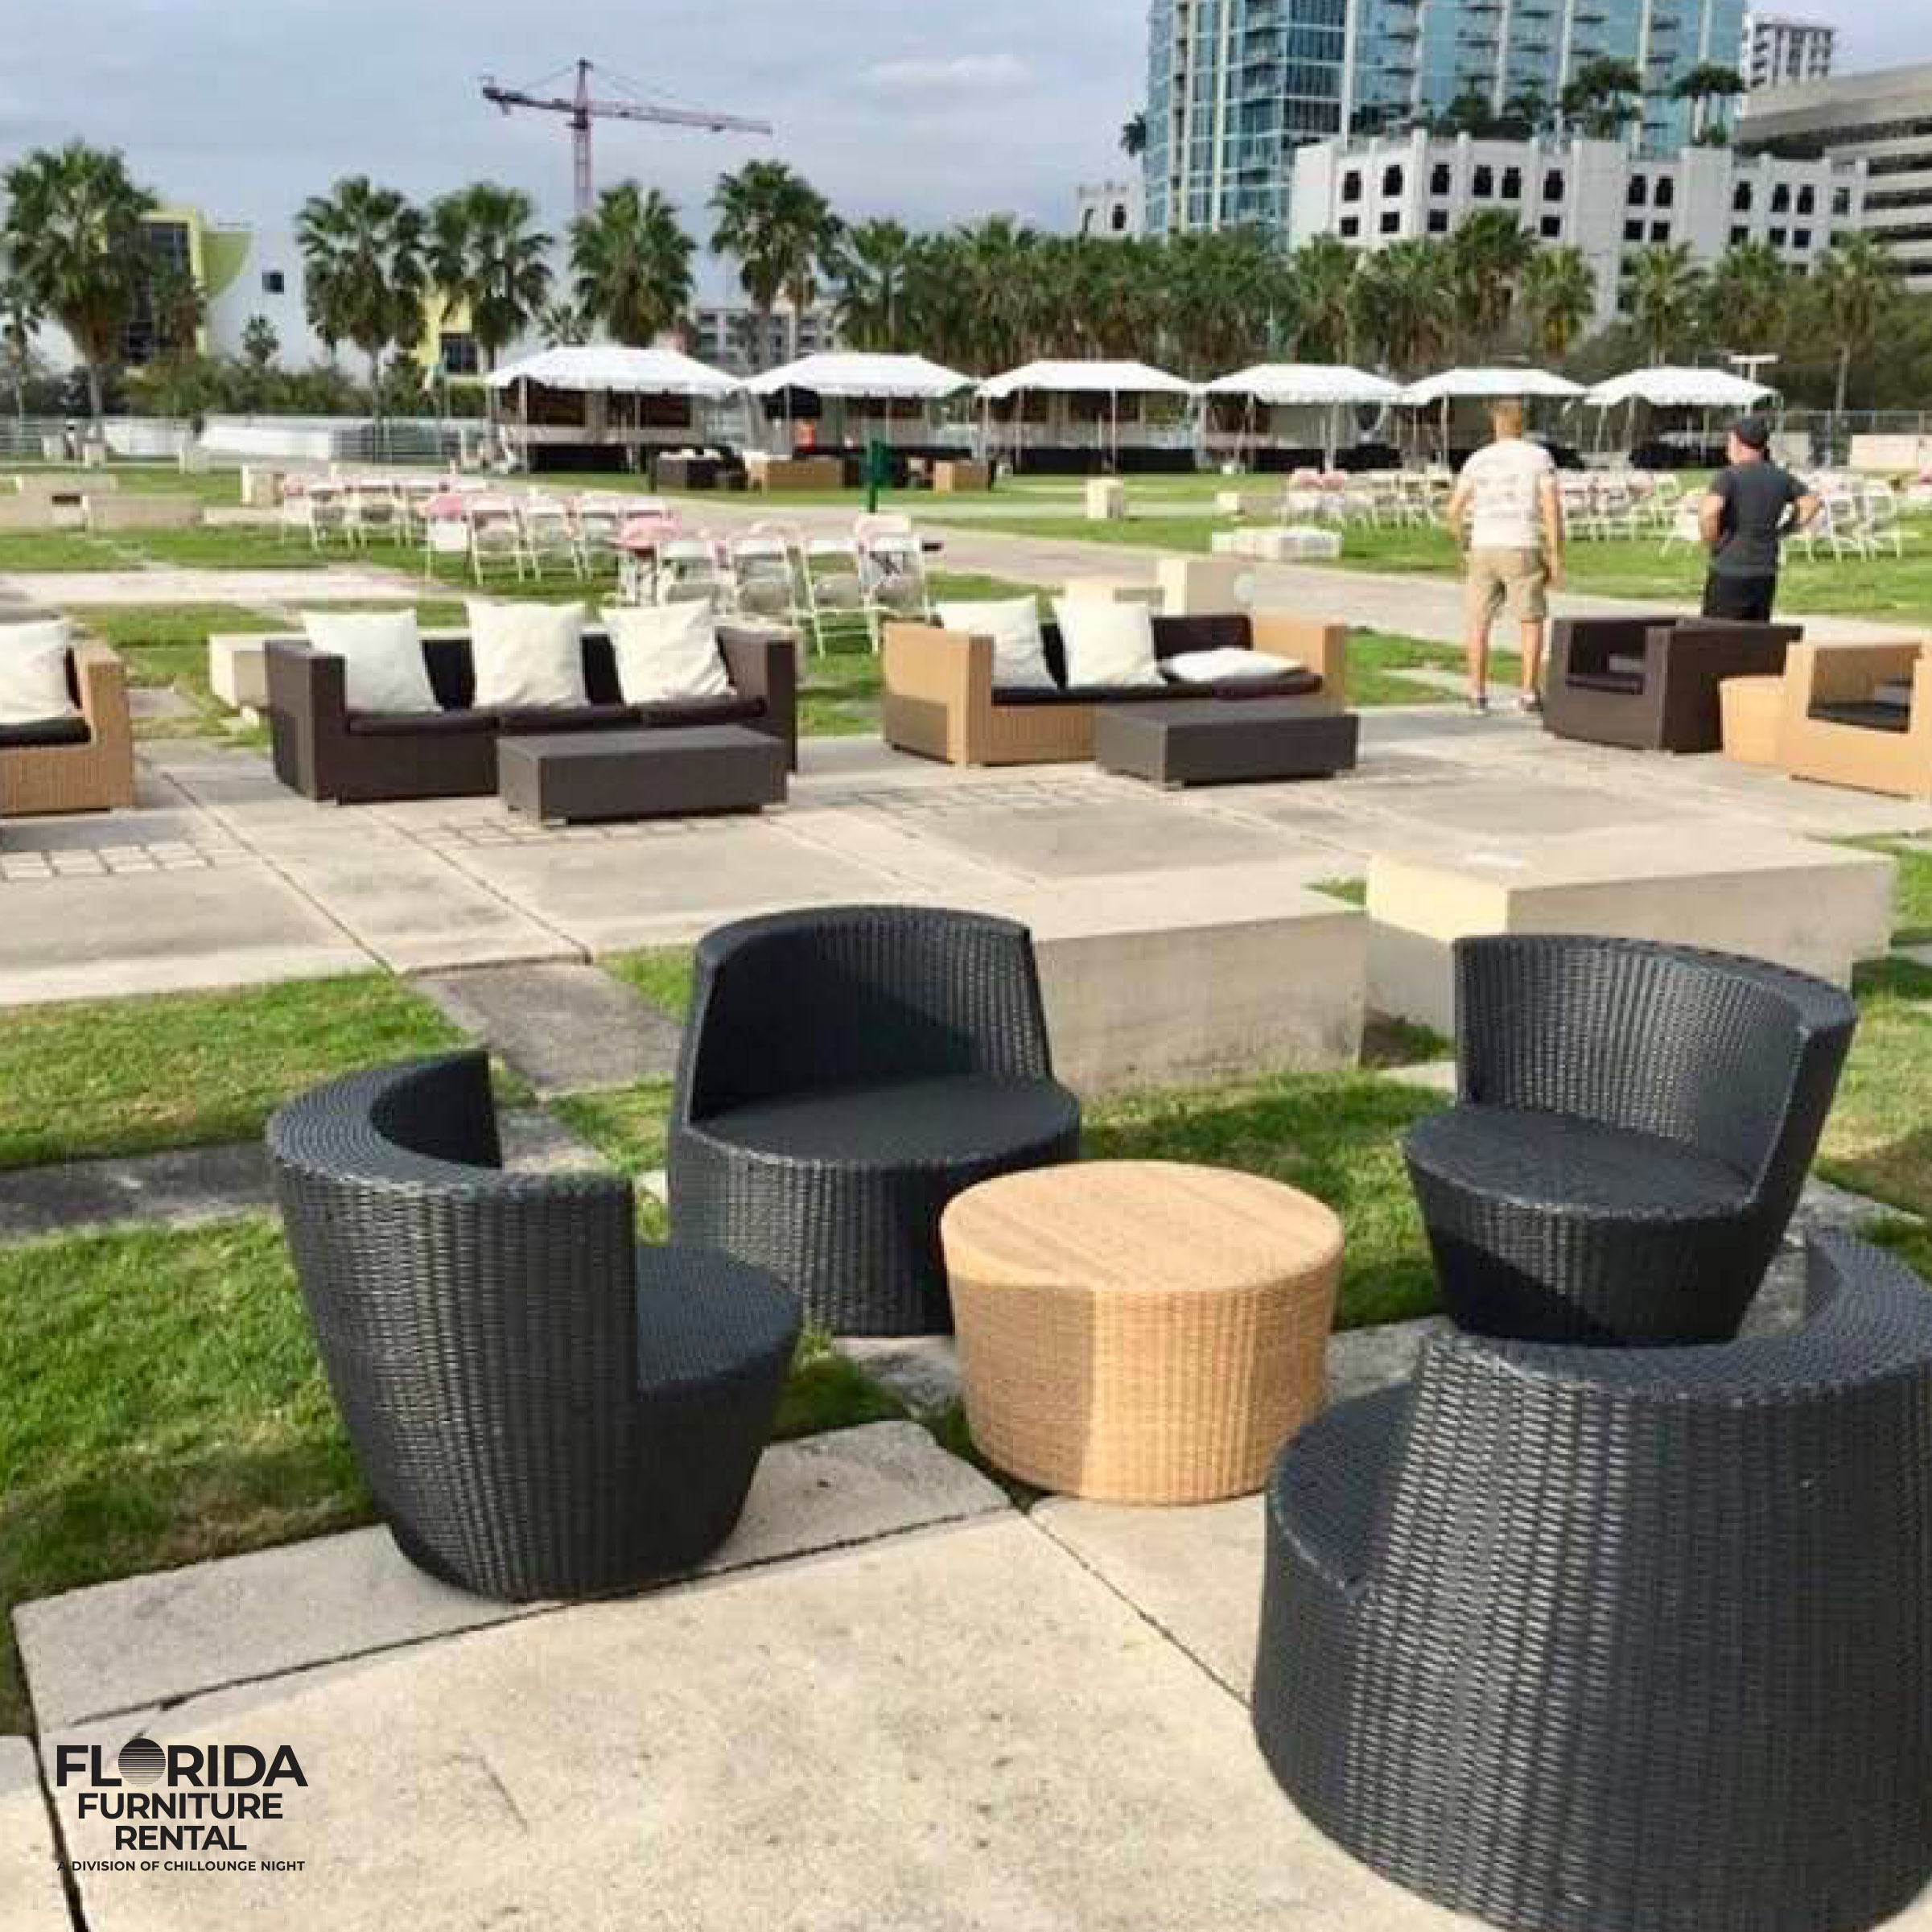 Lounge Furniture Rentals for events